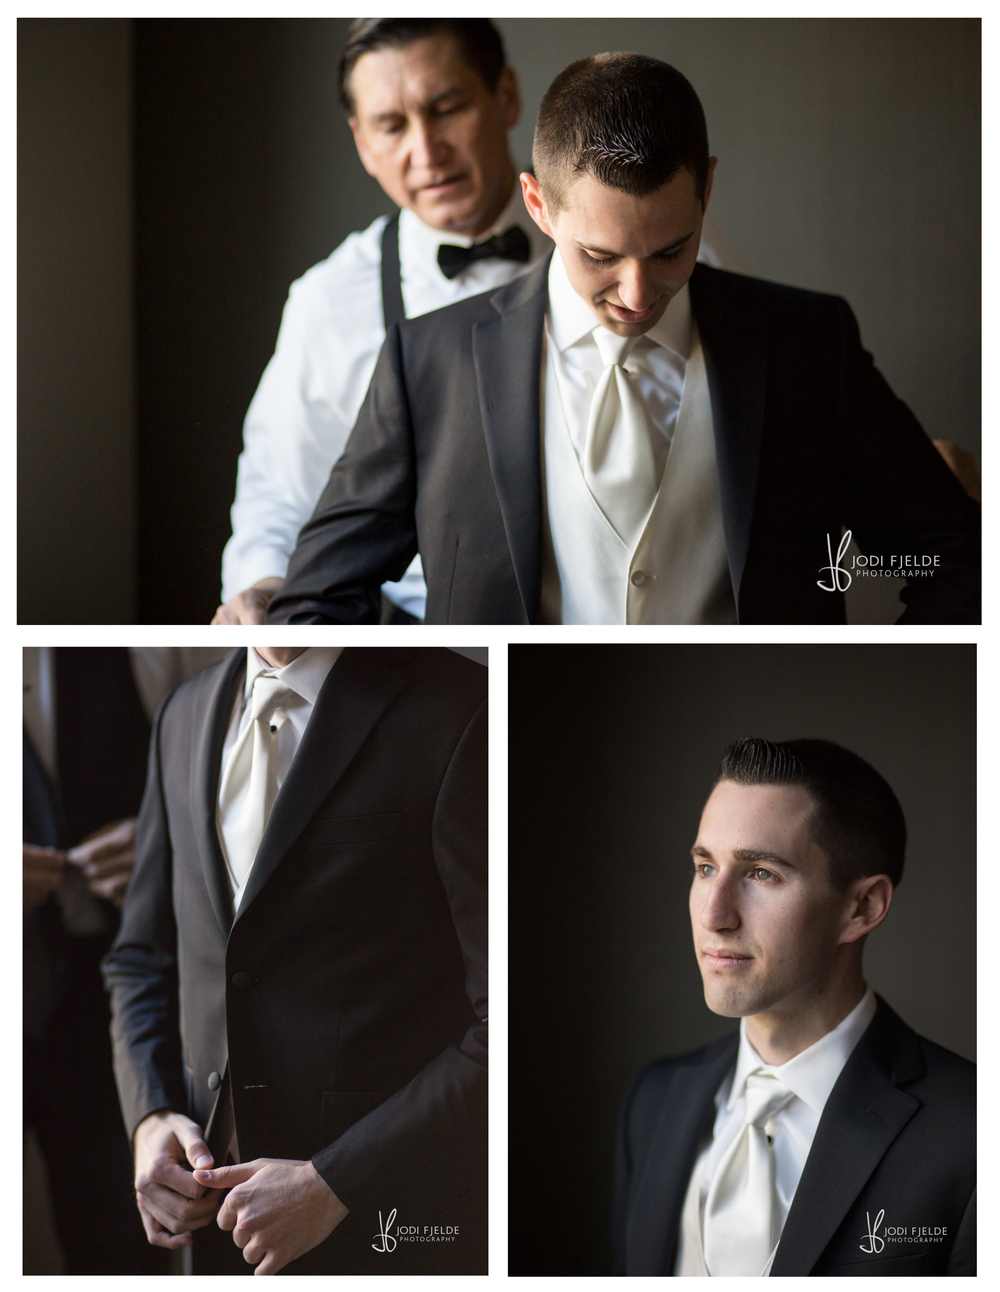 Benvenuto_Palm_Beach_Wedding_Jewish_Michelle & Jason_Jodi_Fjedle_Photography 11.jpg